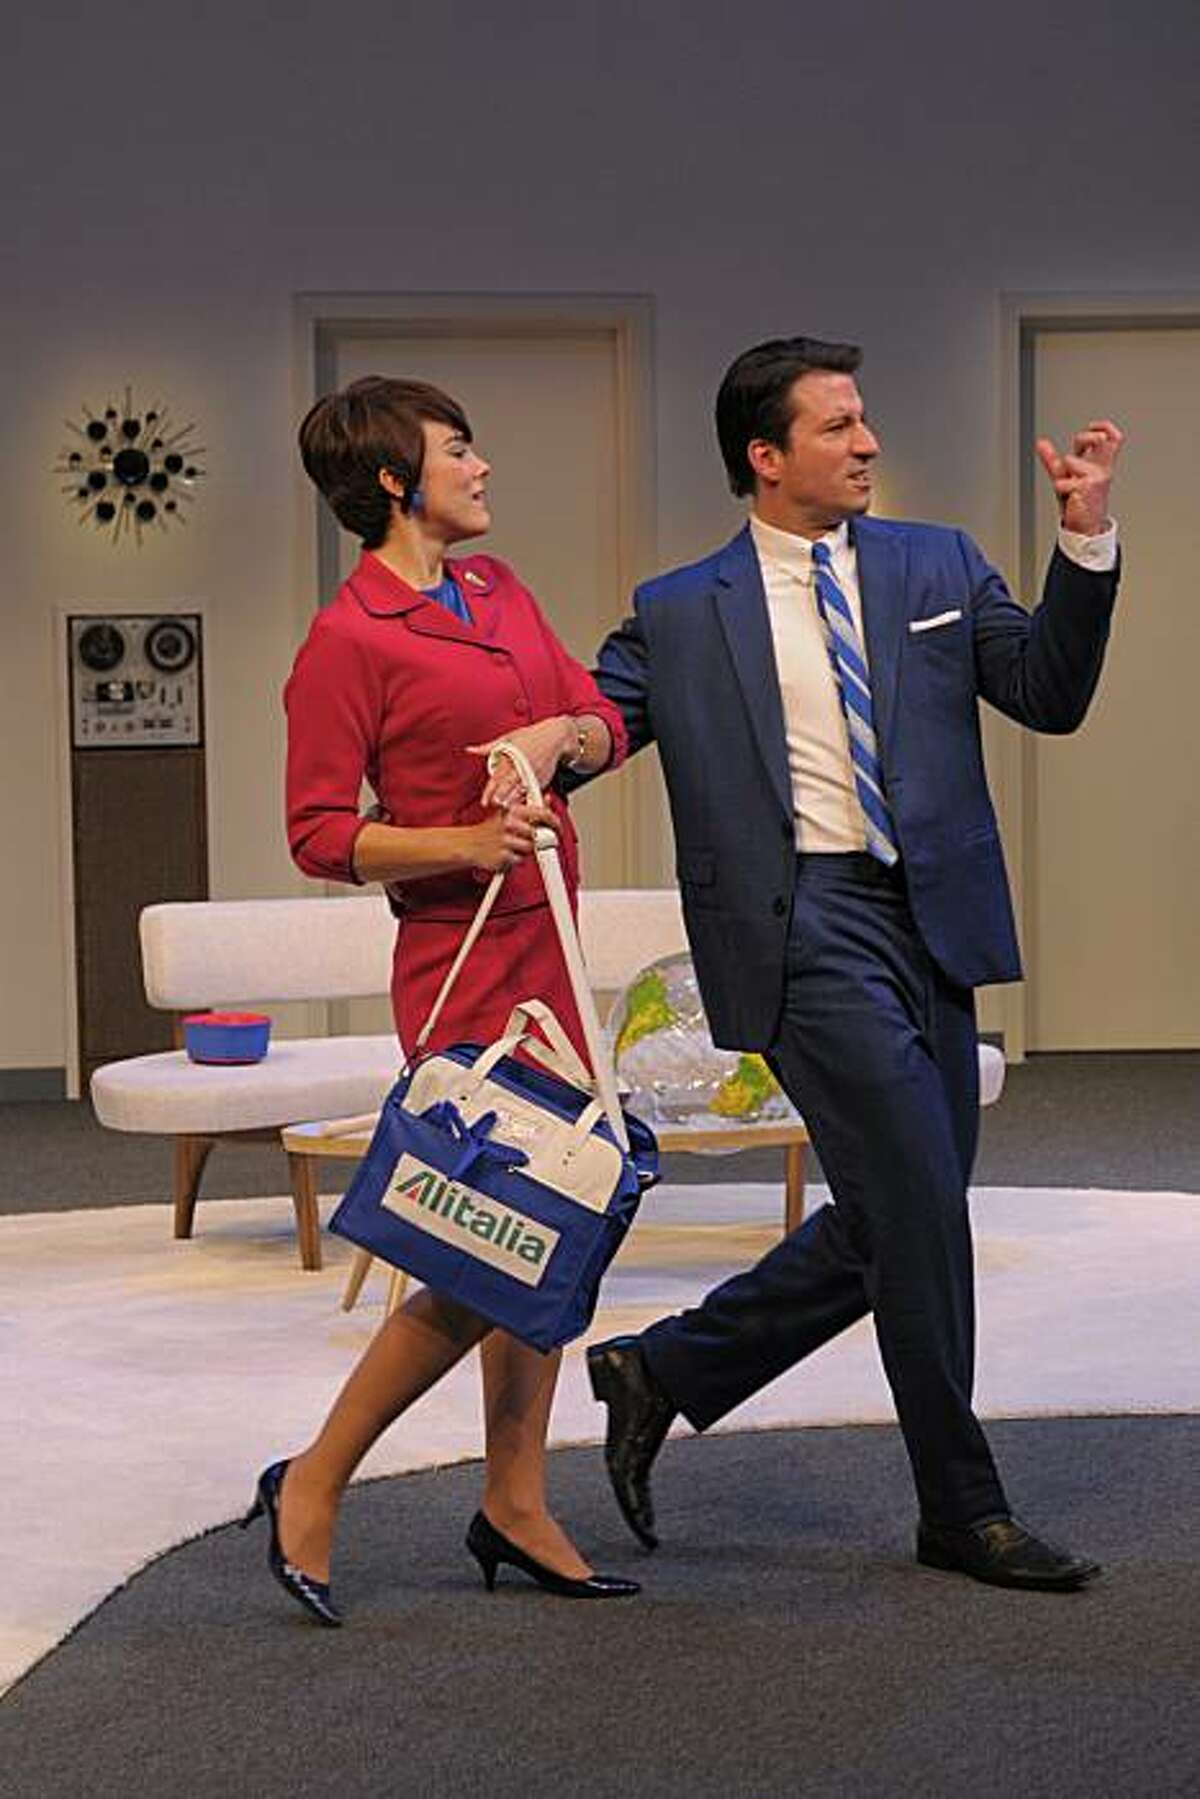 Bernard (Liam Vincent, right) with his flight attendant fiancee Gabriella (Jessica Lynn Carroll) in Center Rep's production of